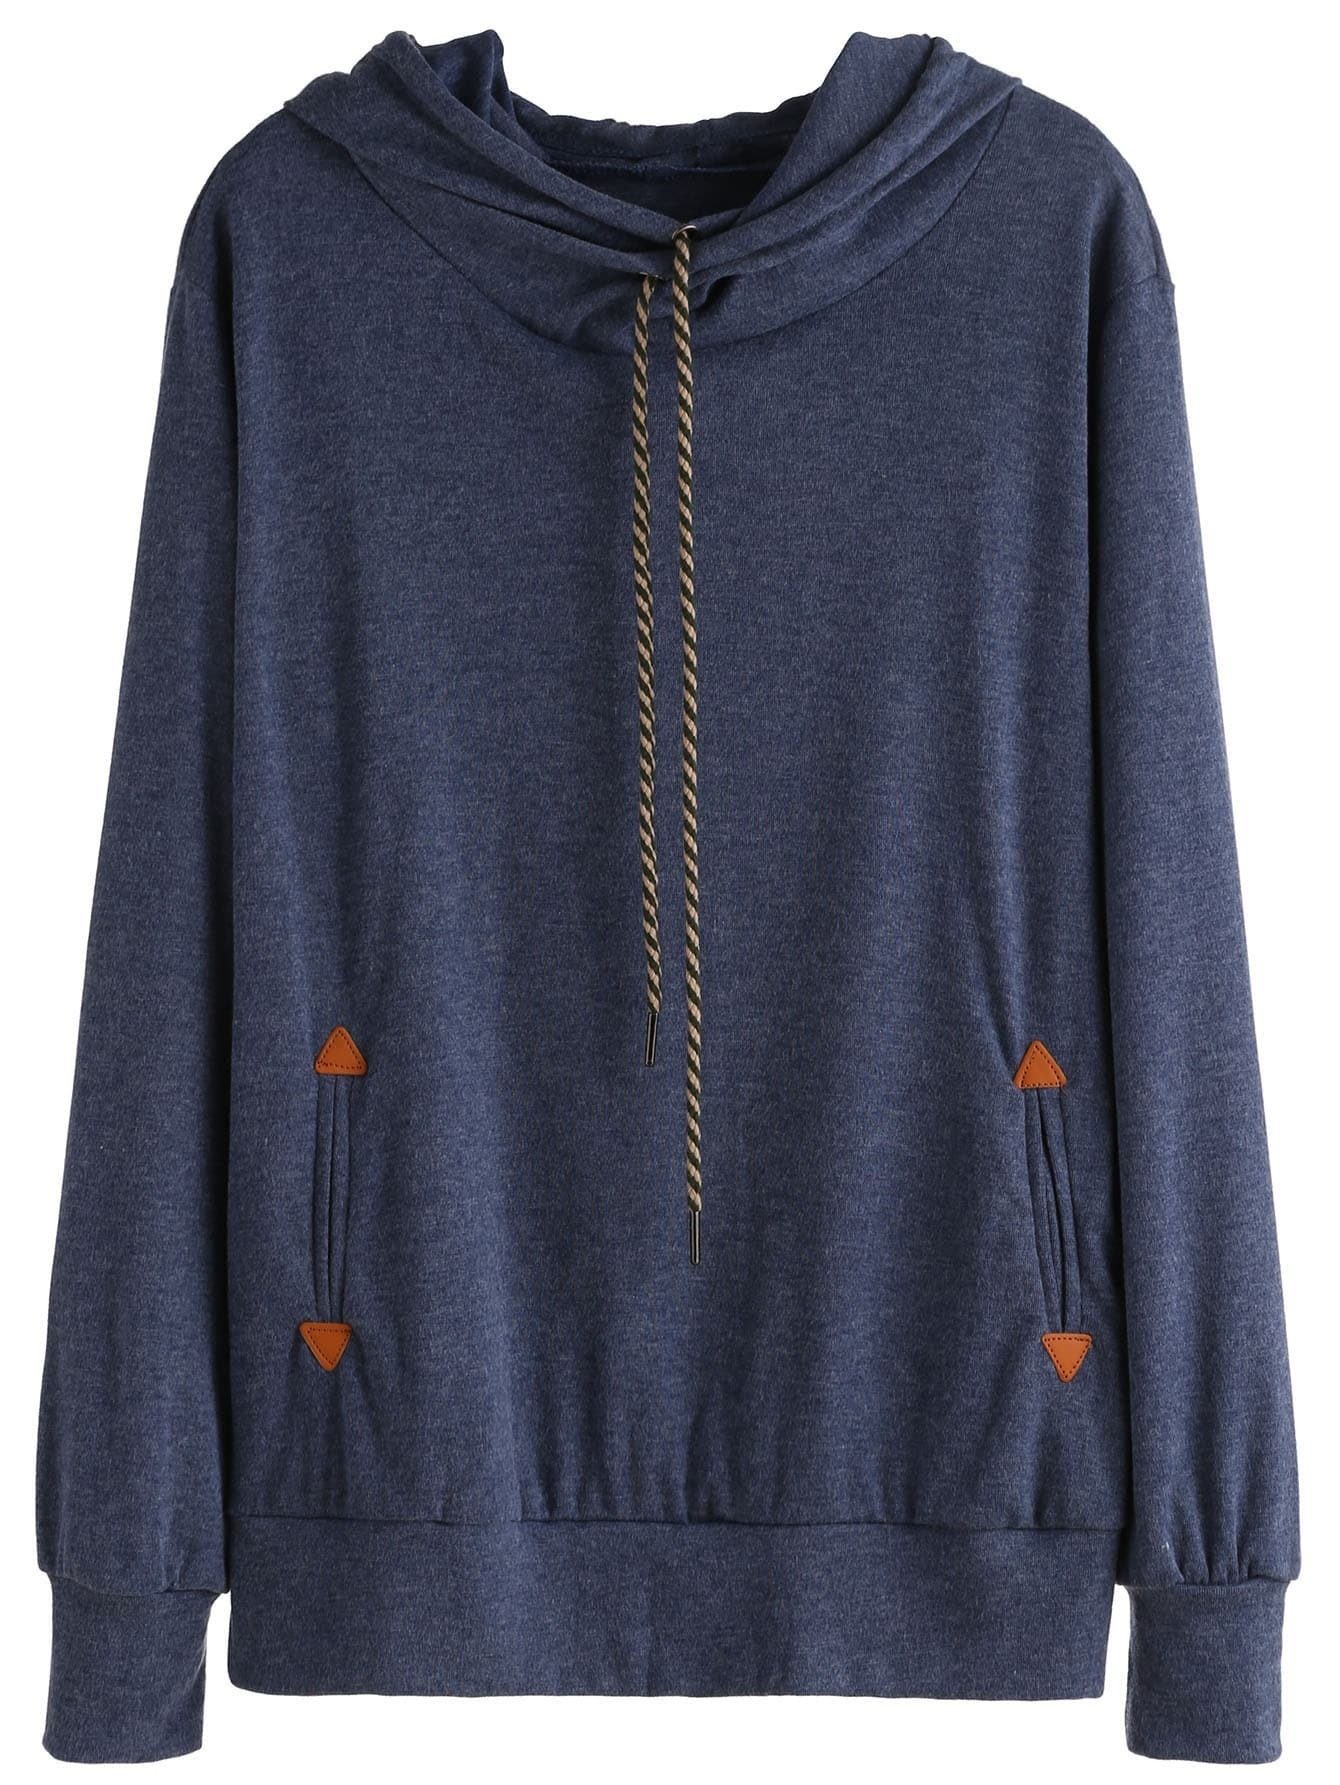 Blue Drawstring Hooded Sweatshirt